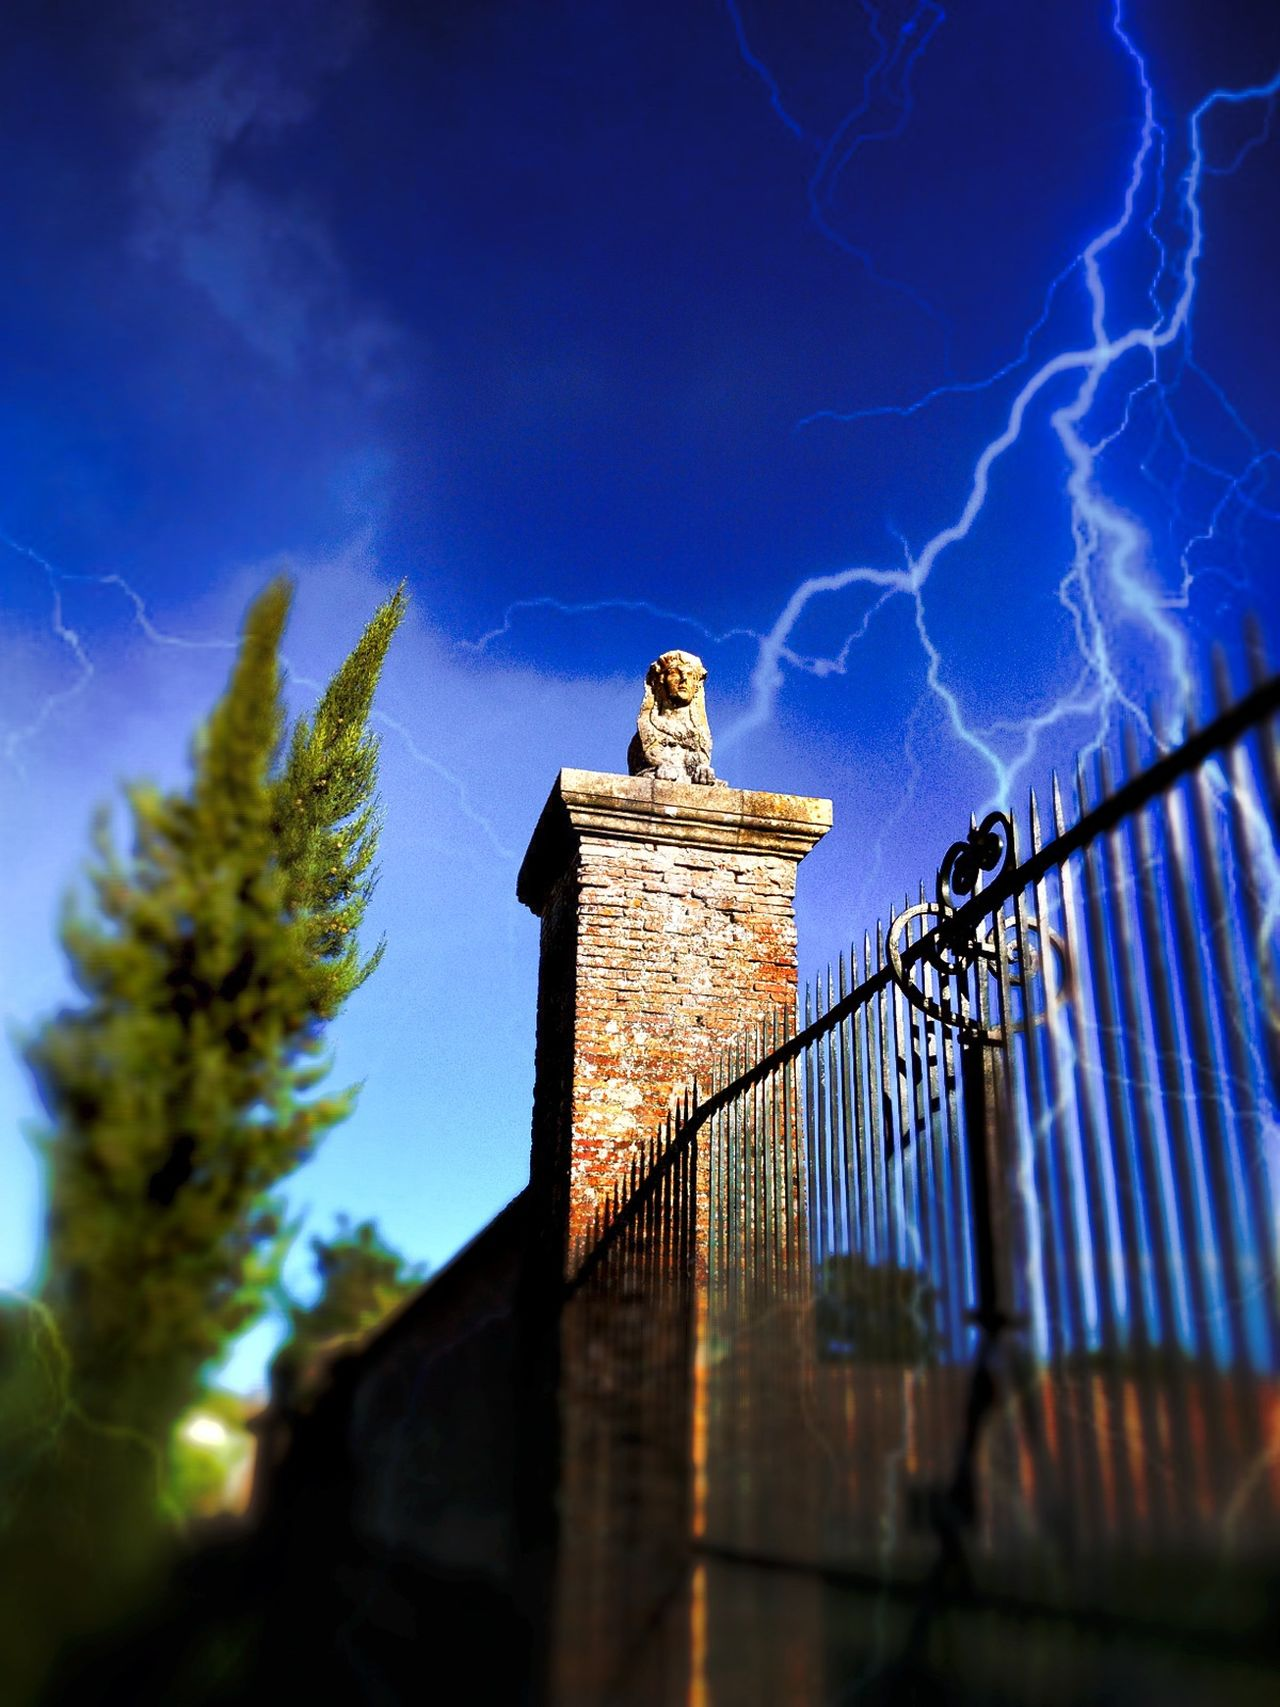 Sphinx guardian of the door Archaic Architecture Artistic Artistic Photography Carved In Stone Château Doorway Eye4photography  EyeEm Best Edits Famous Place Historic Lightning Storm Long Exposure Misterious Mitology Outdoors Riddle Showcase: December Sphinx Statue Tree Wrought Iron Gate Postprocessing